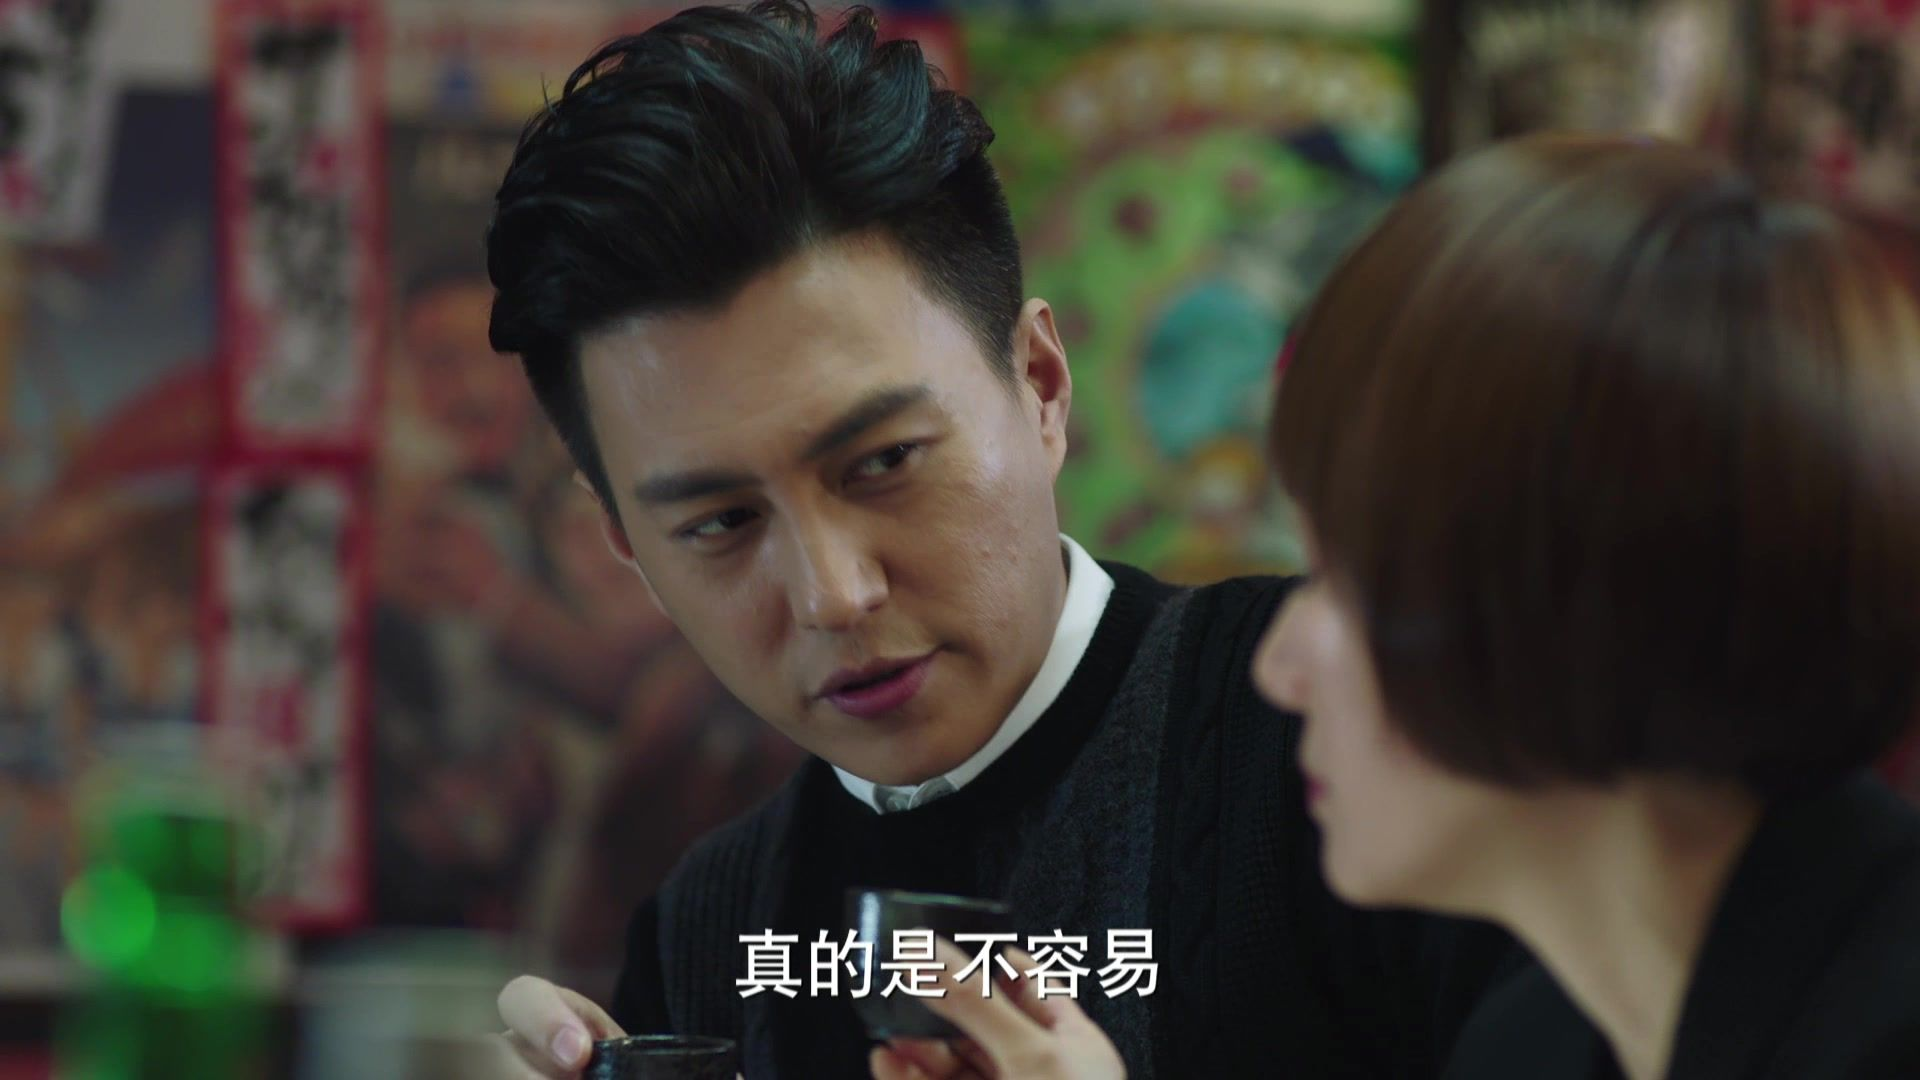 The First Half of My Life - 我的前半生 - Watch Full Episodes Free